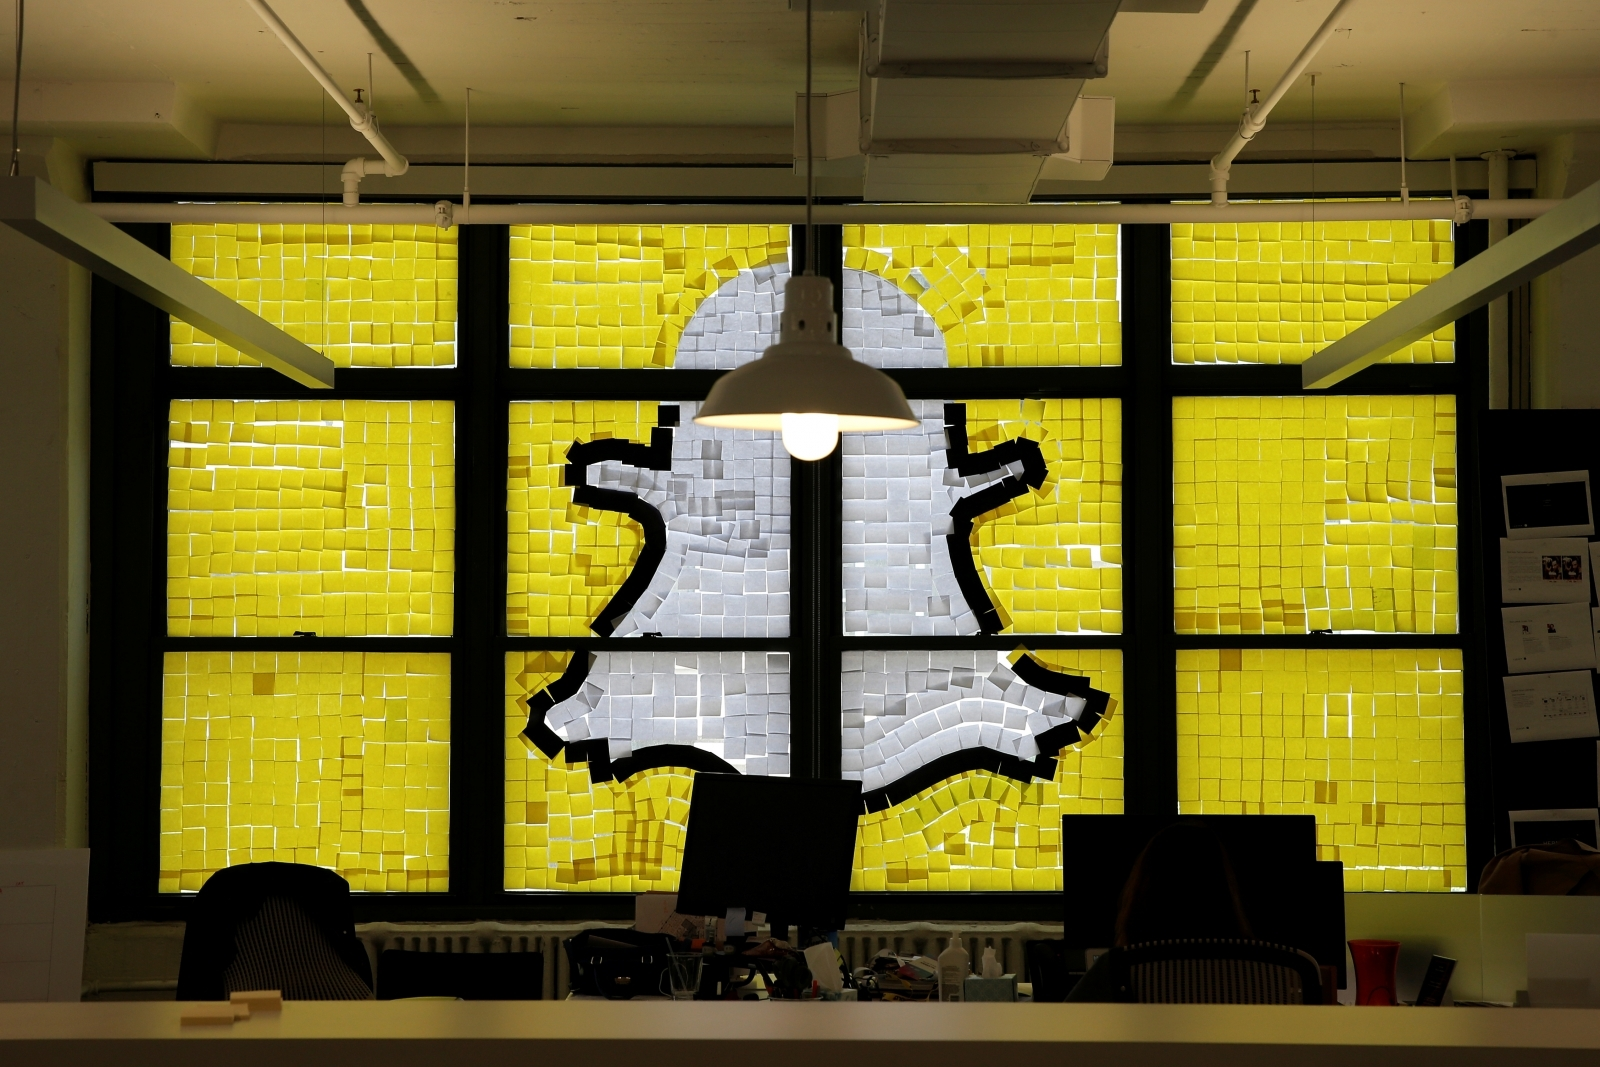 Now, Snapchat blocks Al Jazeera in Saudi Arabia